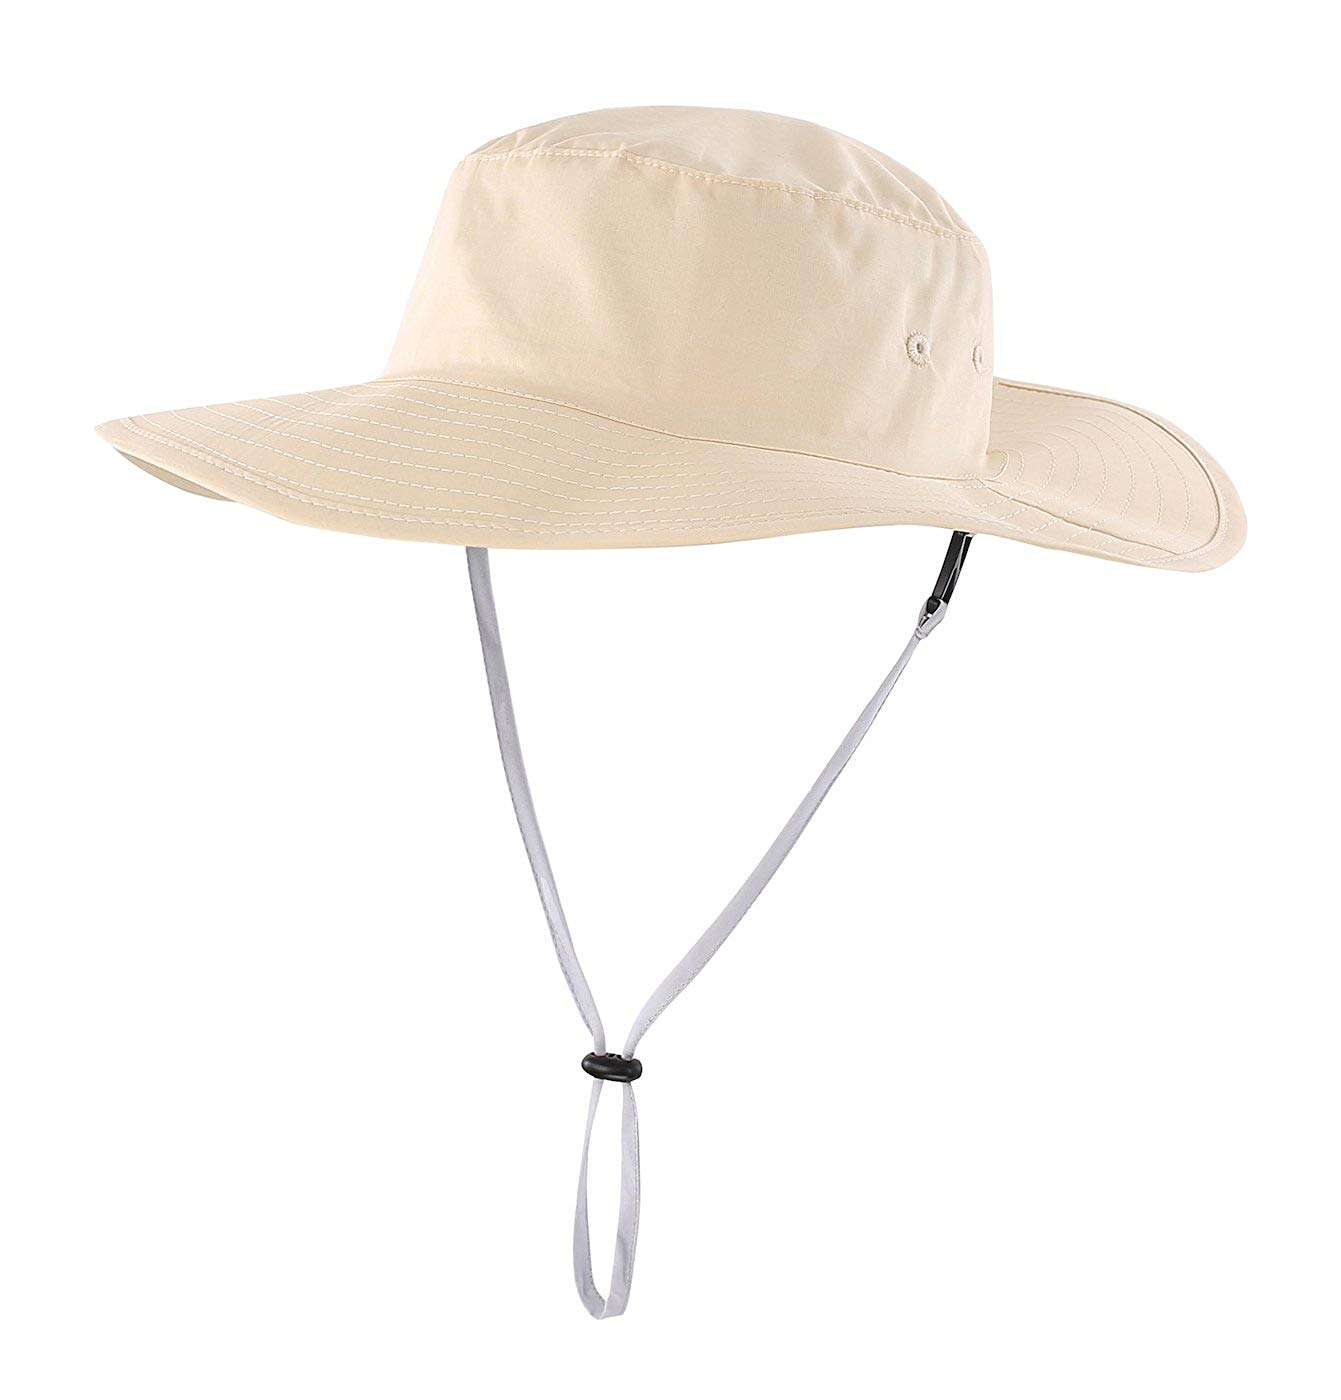 6a4c818c193 Get Quotations · Home Prefer Kids Cool Cotton Bucket Hat UPF50+ Wide Brim  Sun Protection Play Hat